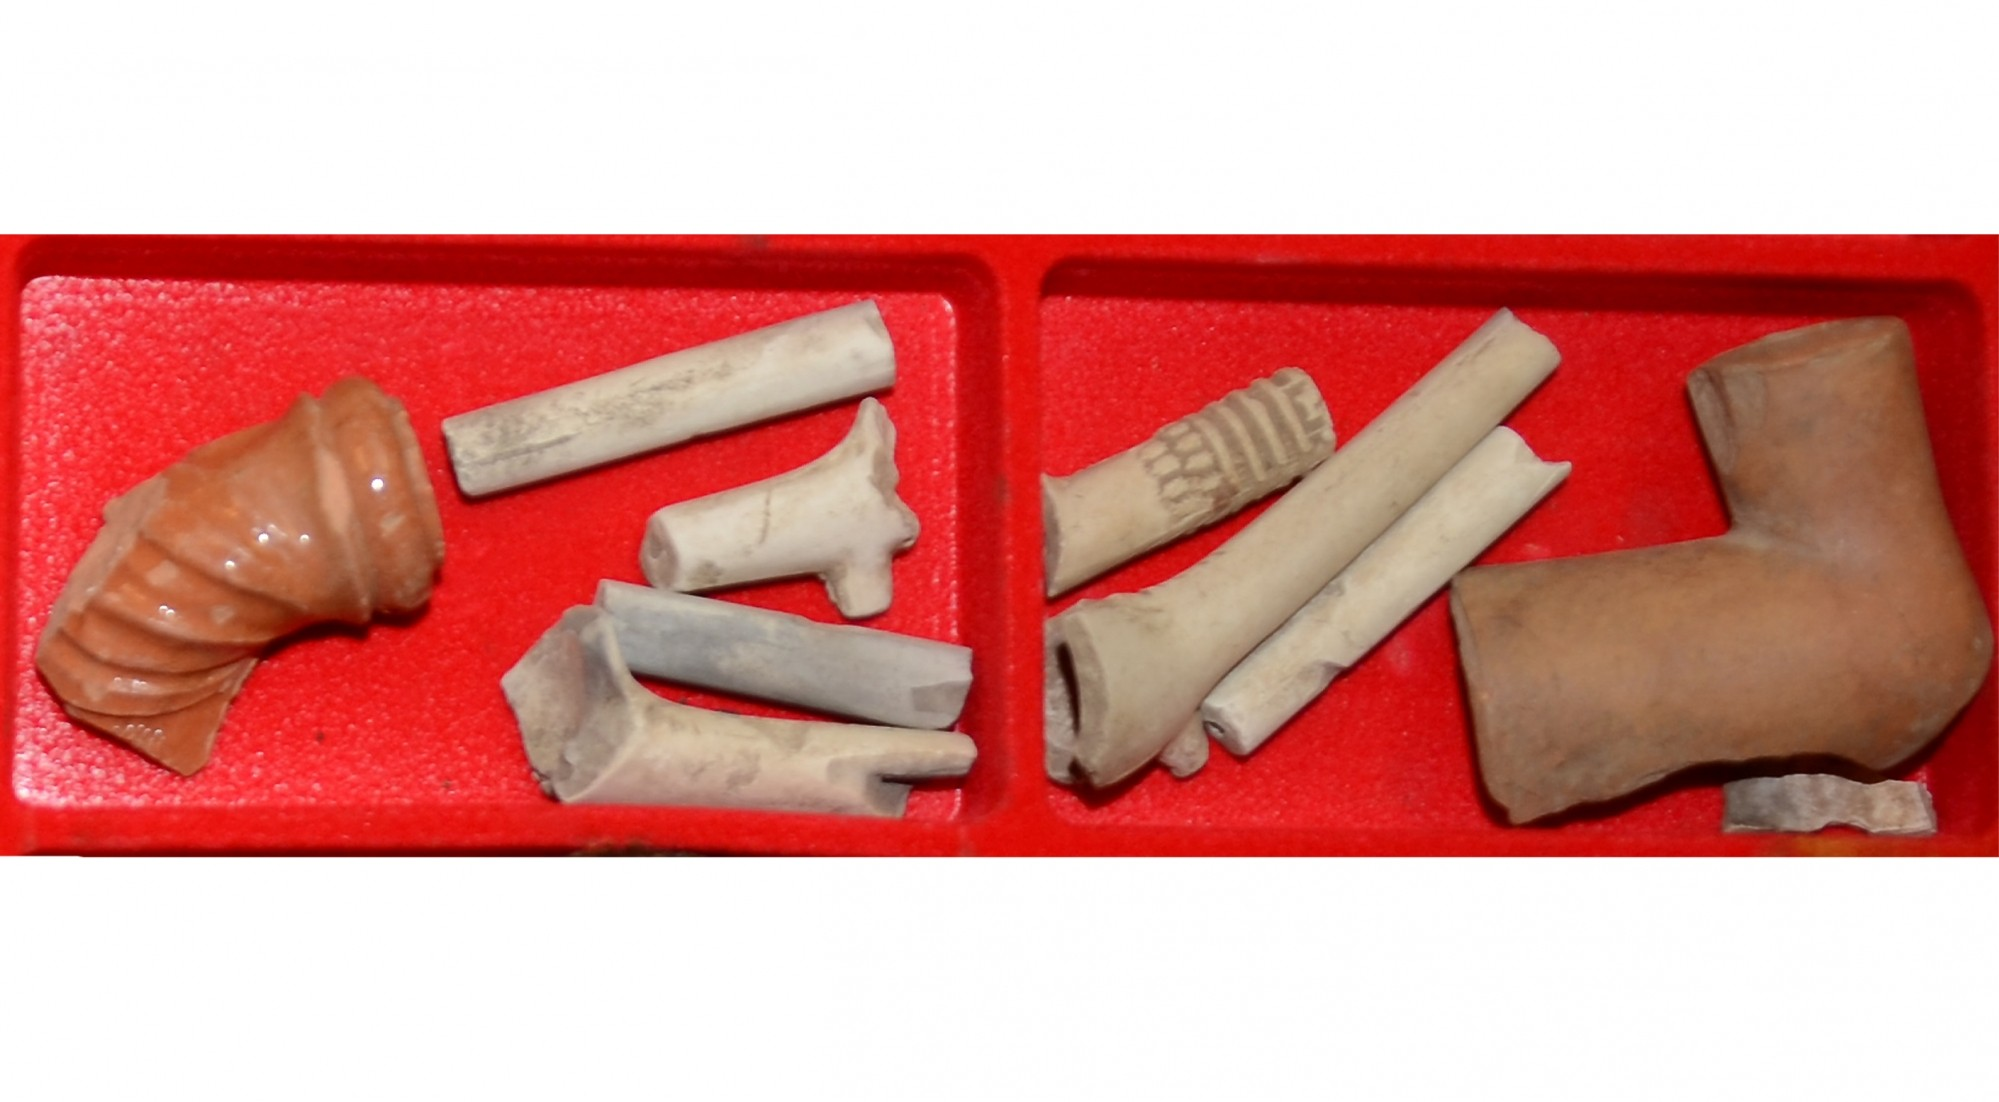 COLLECTION OF CLAY PIPE STEMS FROM GETTYSBURG